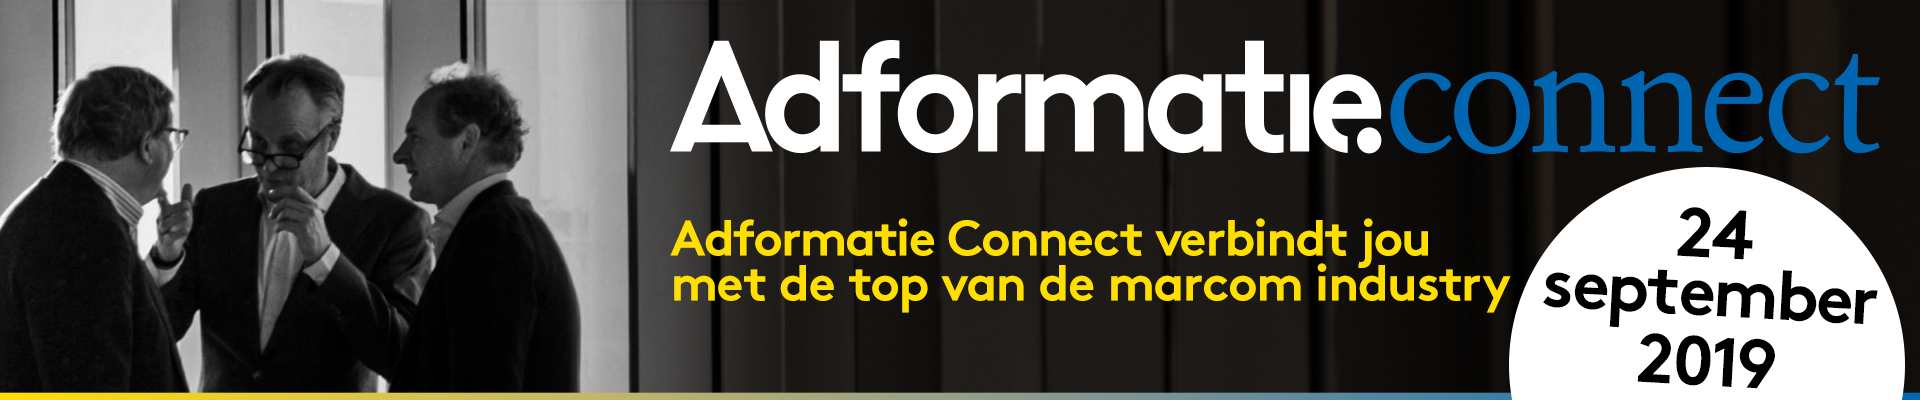 Adformatie Connect 24 september